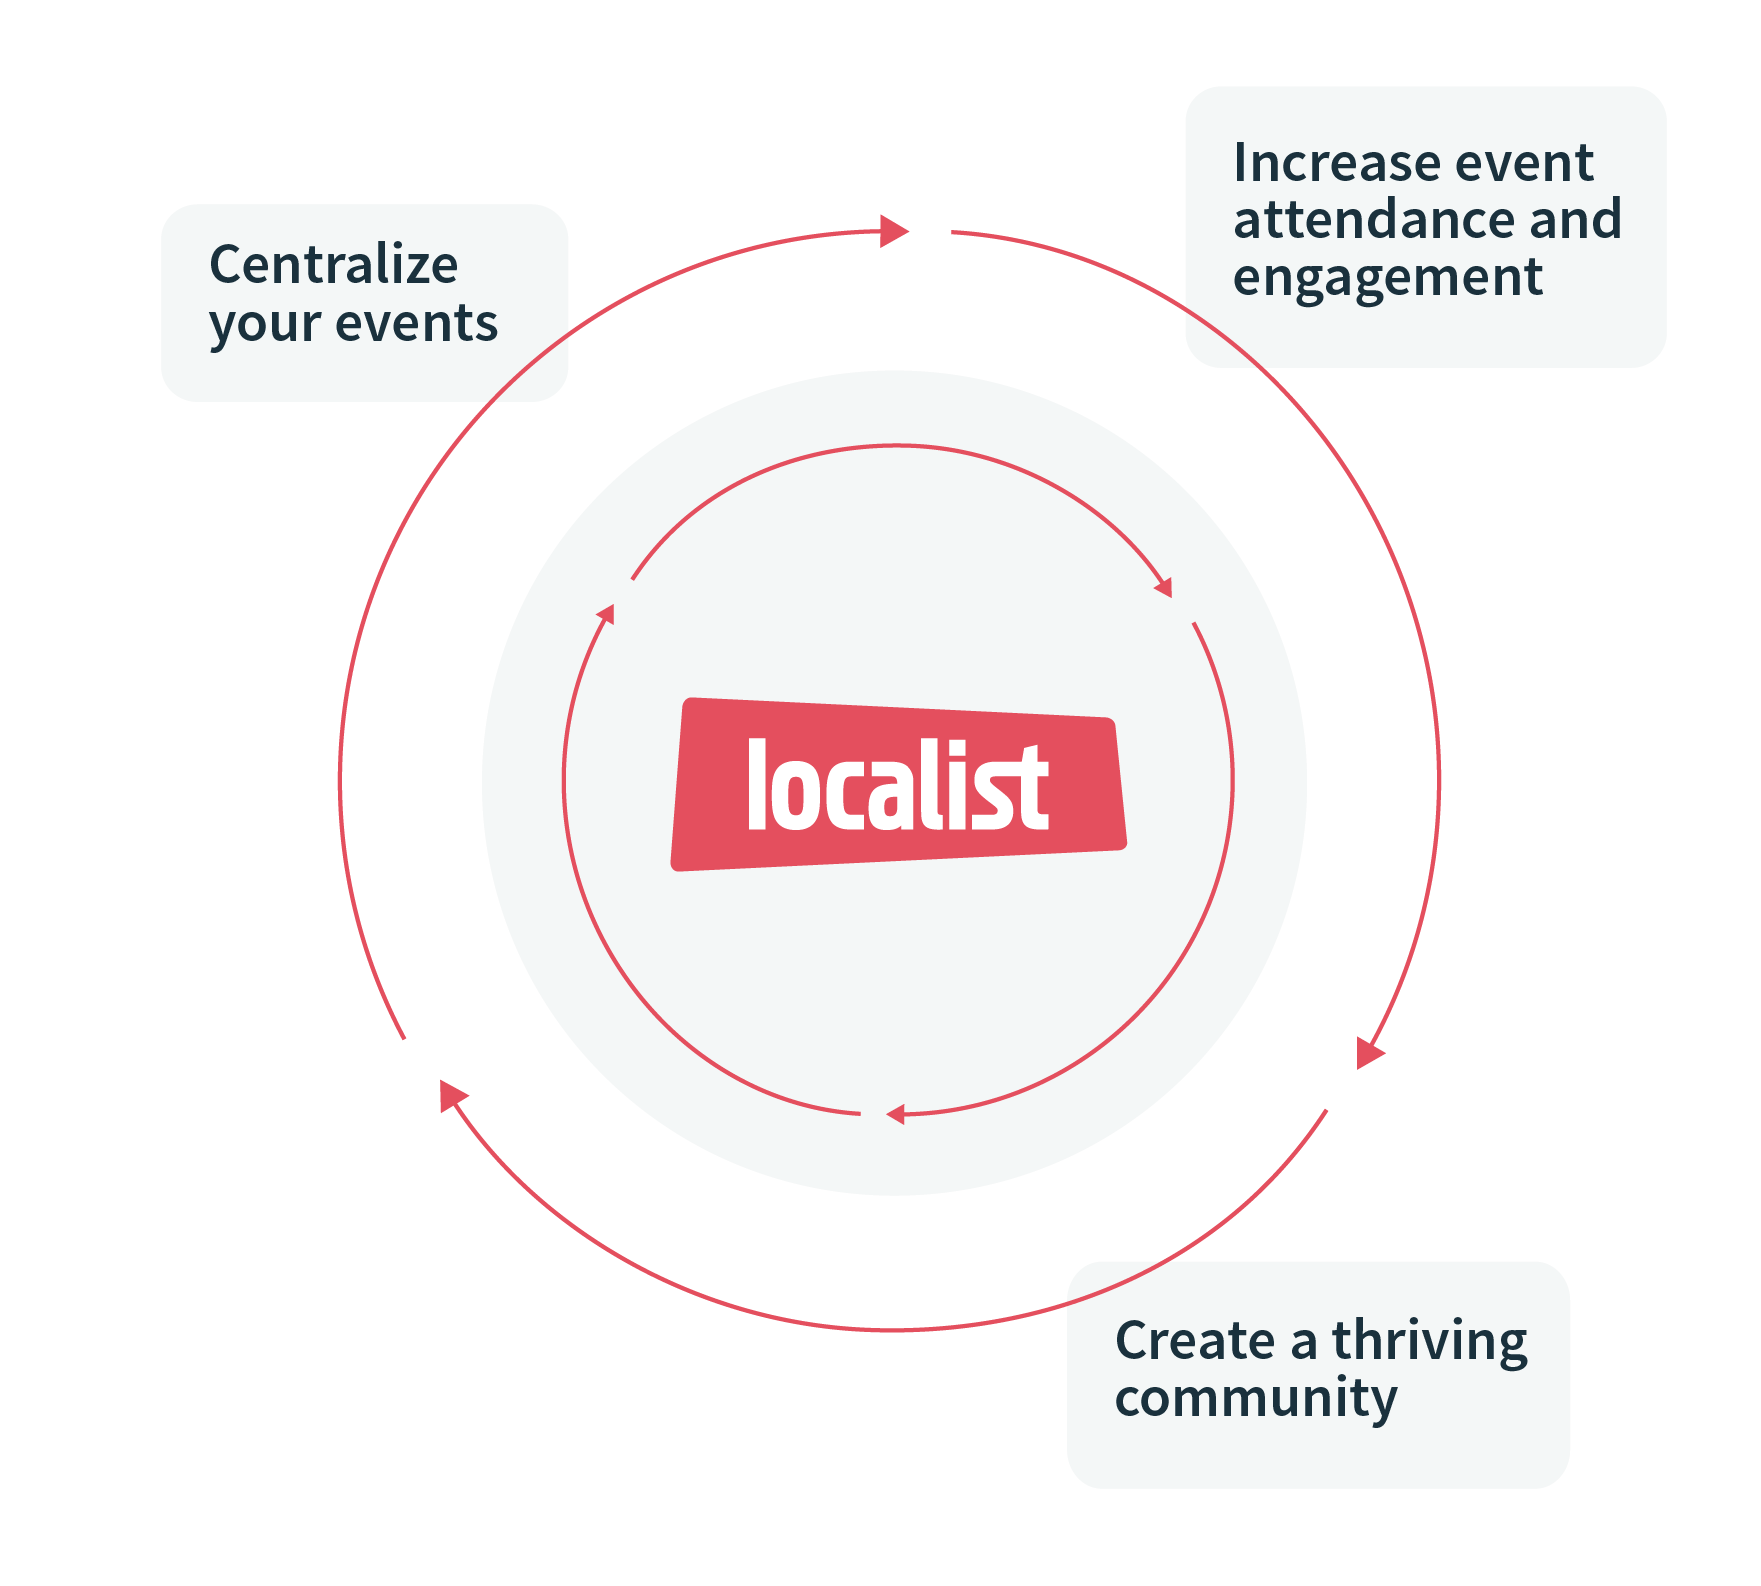 Centralize your events to increase event attendance and engagement, and to create a thriving community